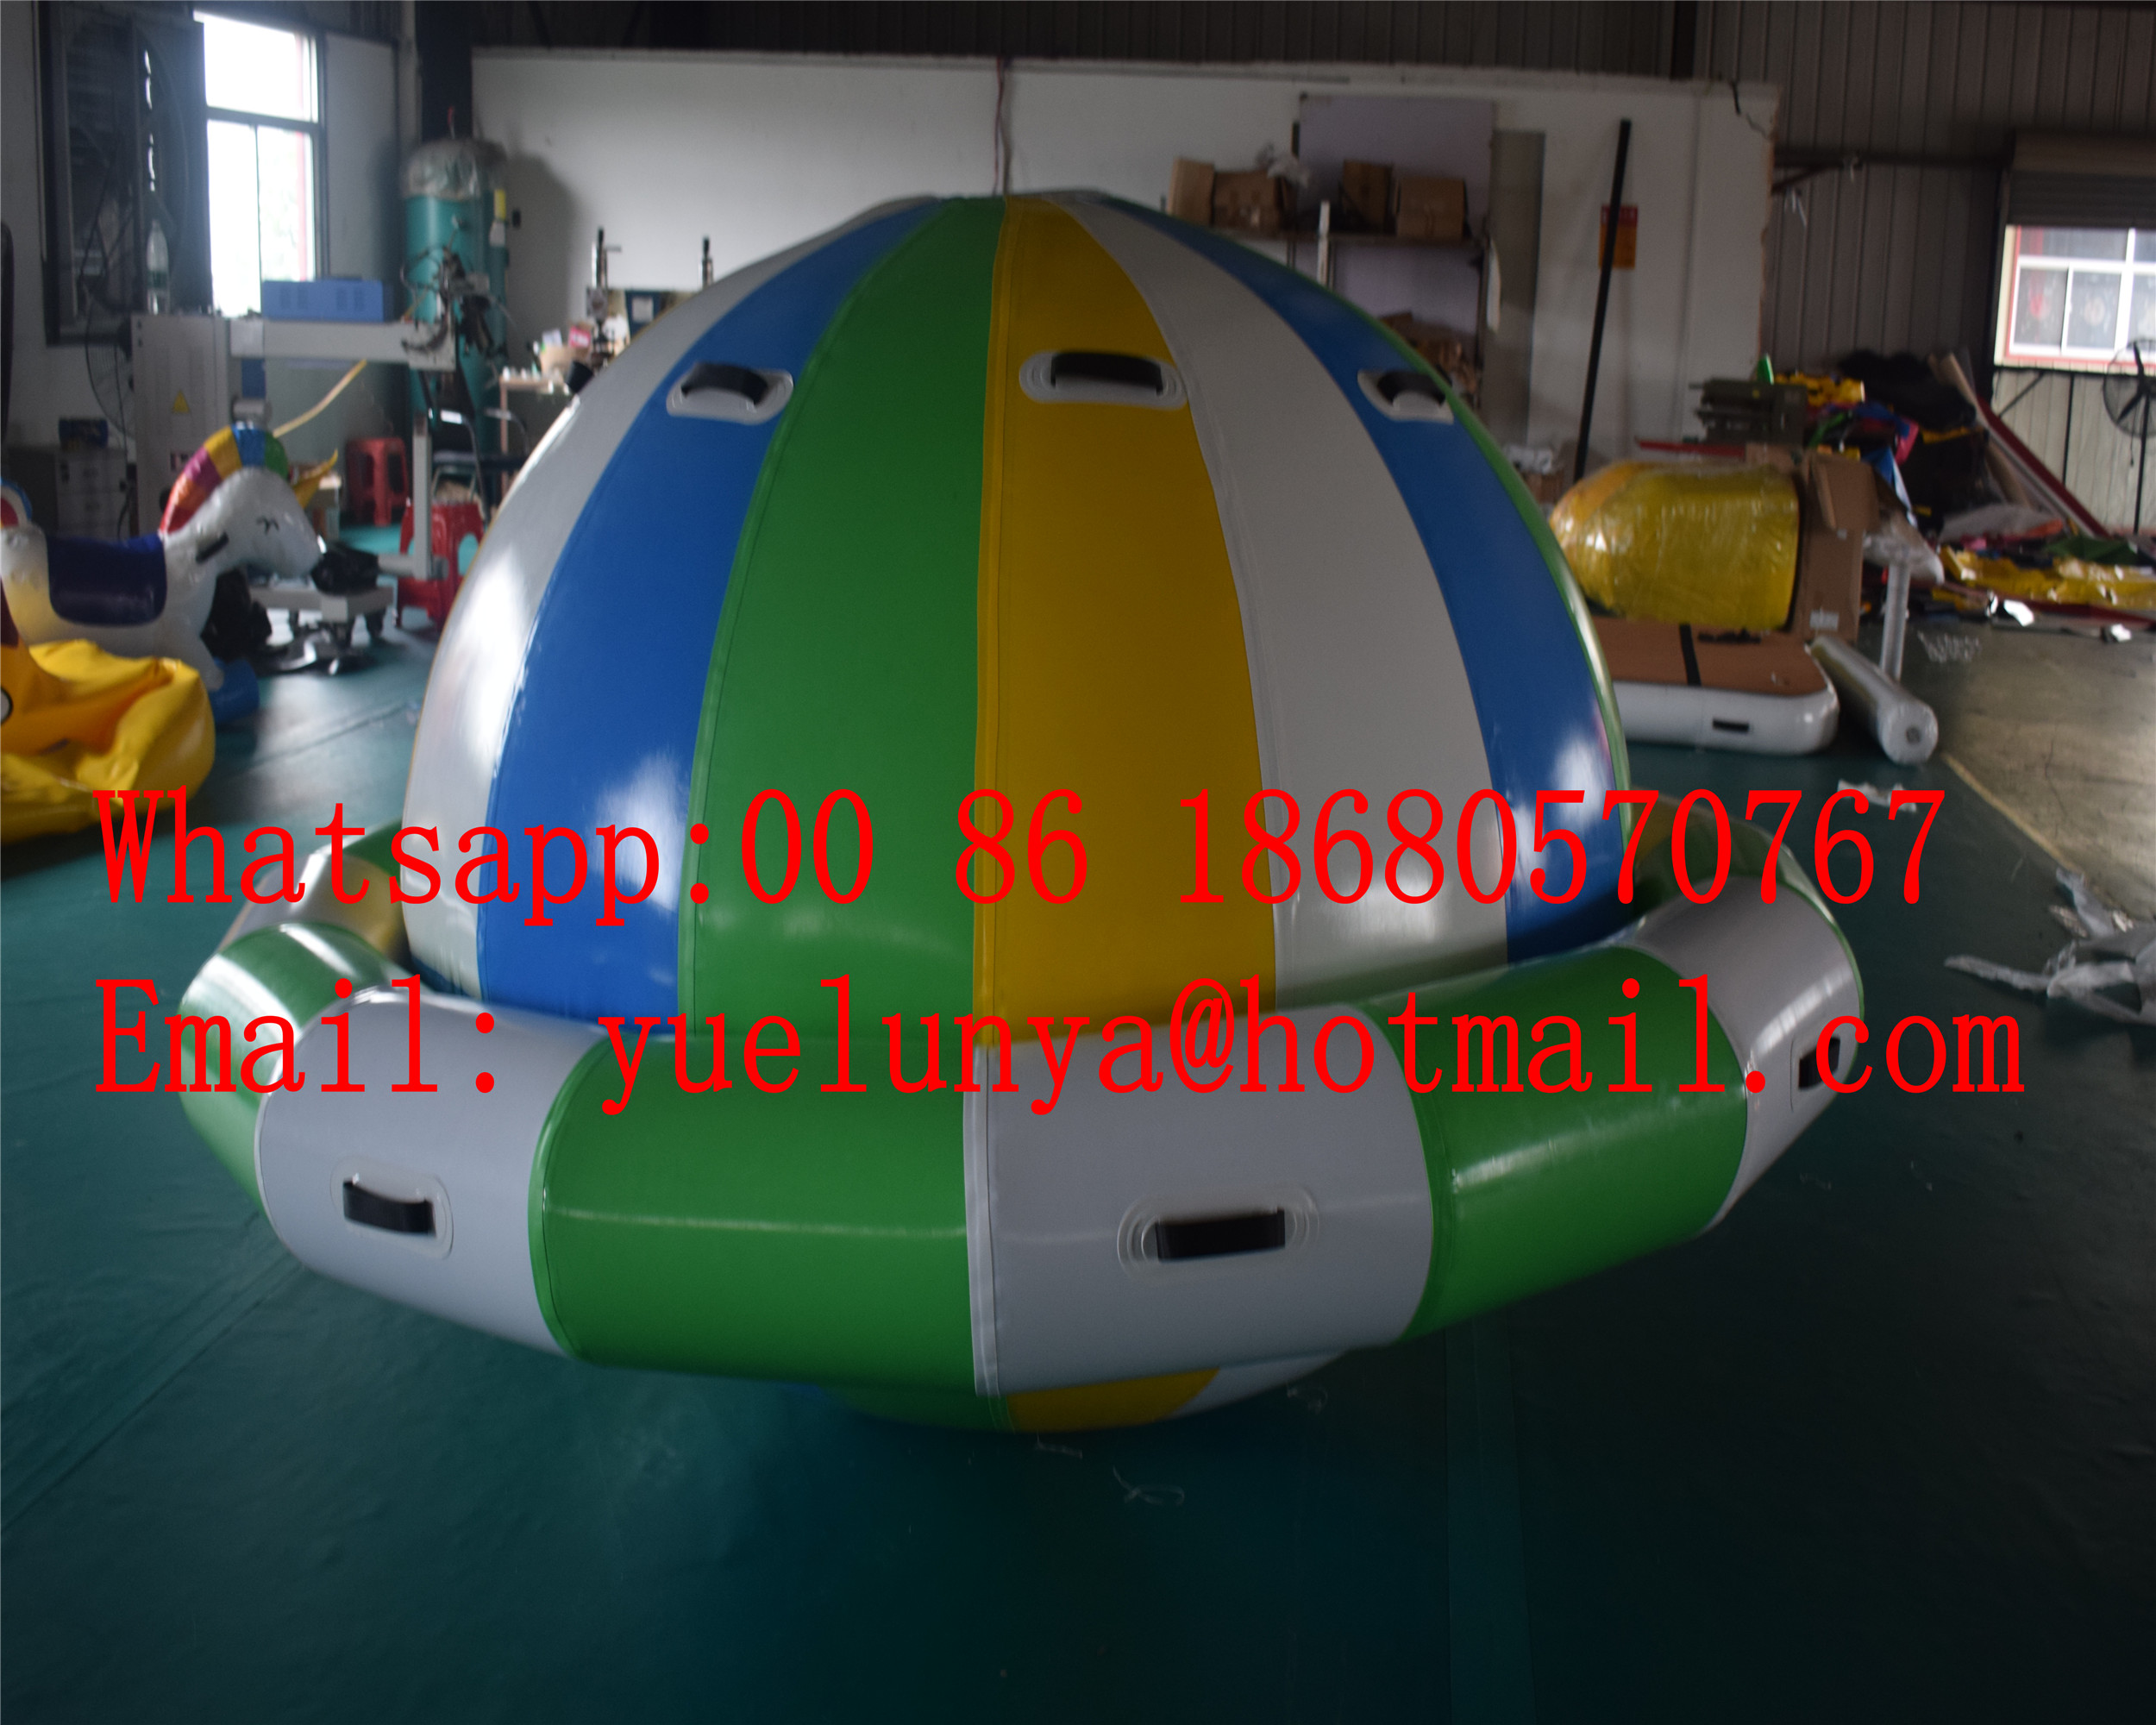 Best selling inflatable water toys,inflatable waterInflatable water toy, Inflatable water spinning topBest selling inflatable water toys,inflatable waterInflatable water toy, Inflatable water spinning top